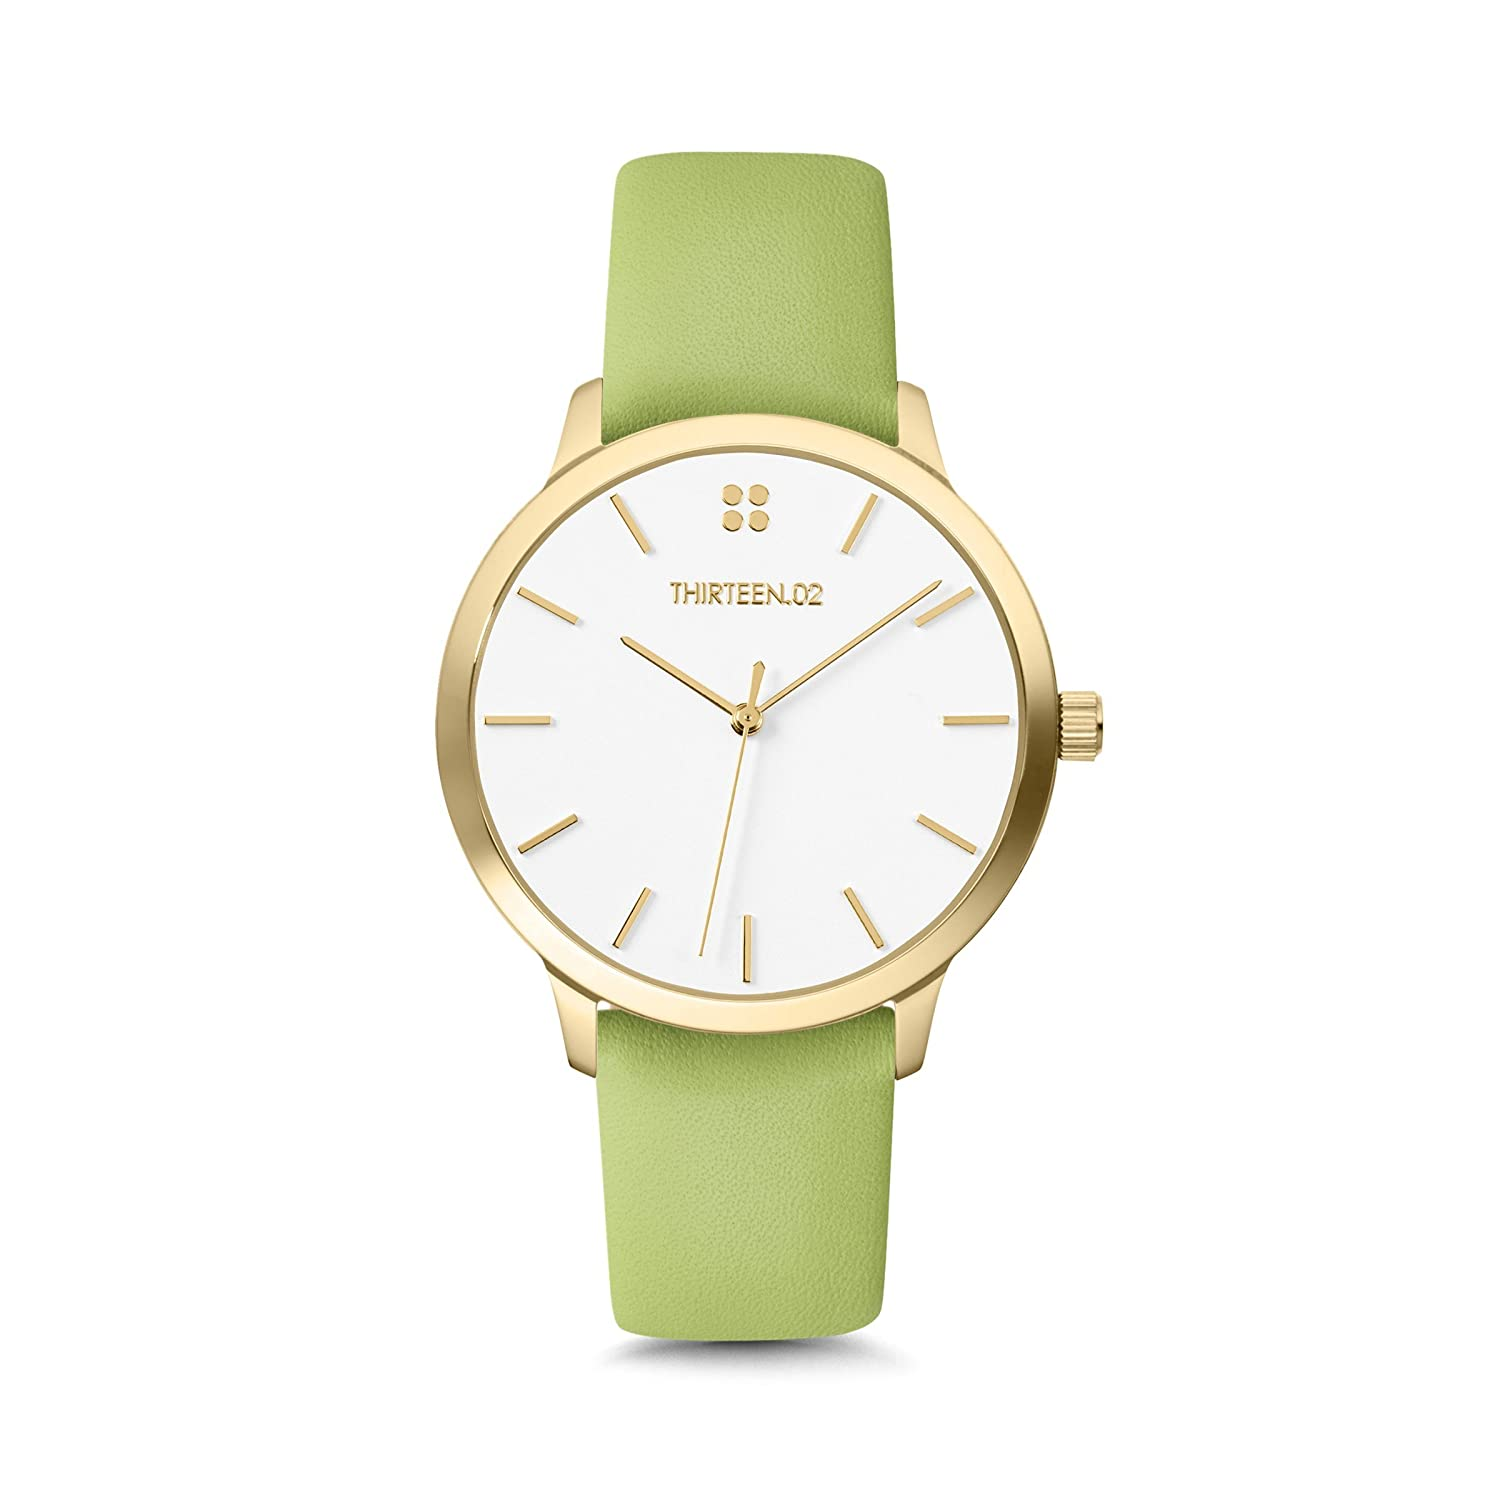 1302 Watches for Women, Gold Leather Band Watch, Womens Watches, Watches for Women, Reloj de Mujer, Womens Wrist Watch, Gift for Women, Gift for Wife, ...